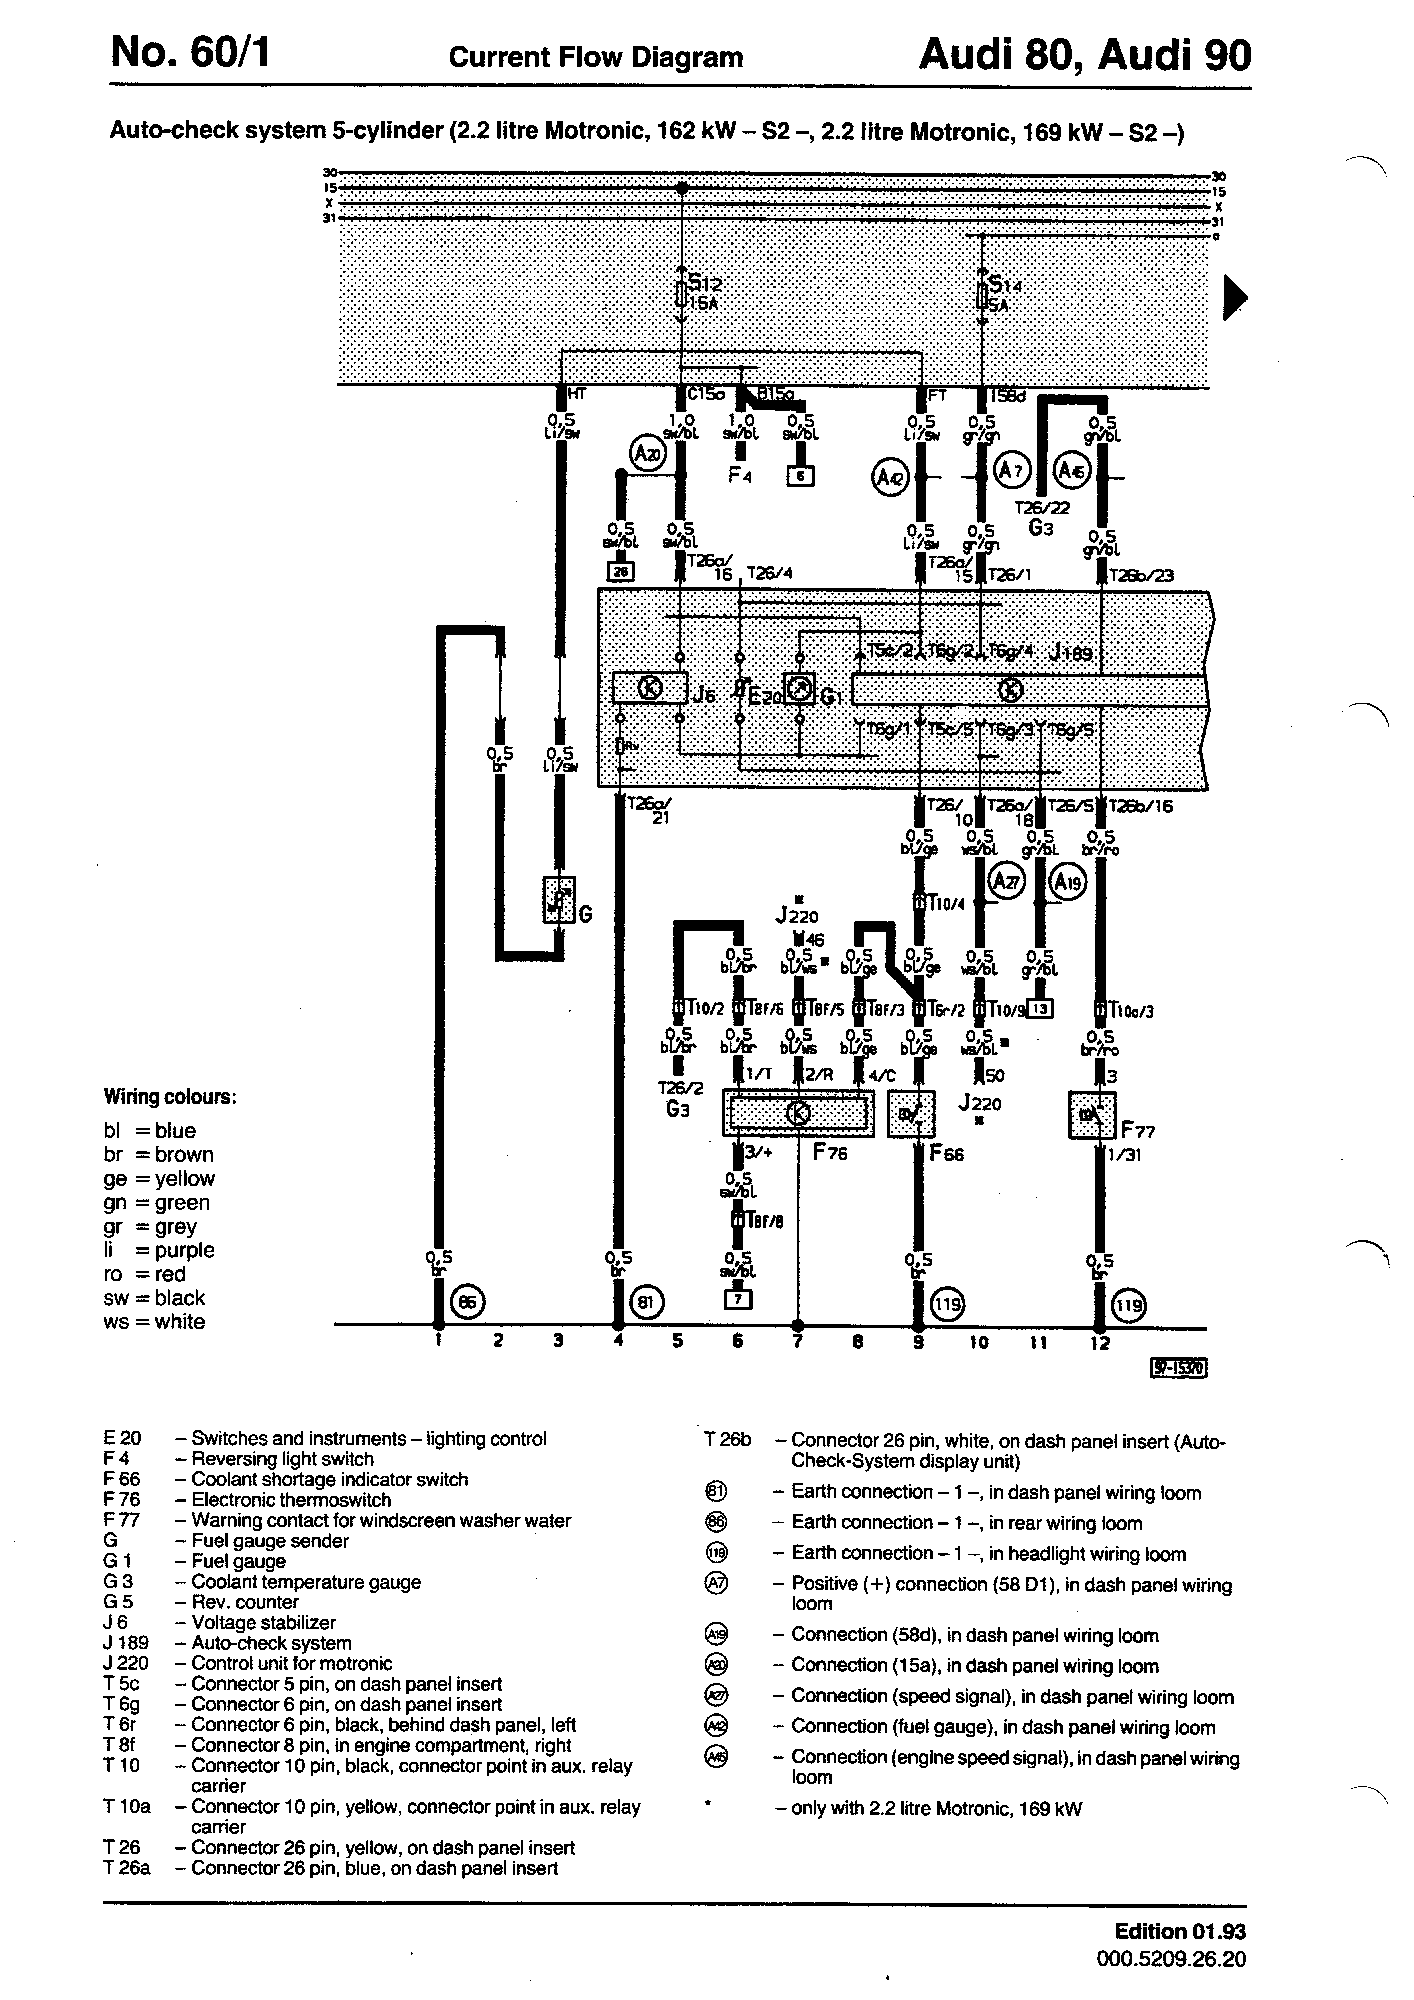 Audi A4 B5 Wiring Diagram Library B8 Fuse Diagrams Component Lookup 1998 Interior Light Rs2